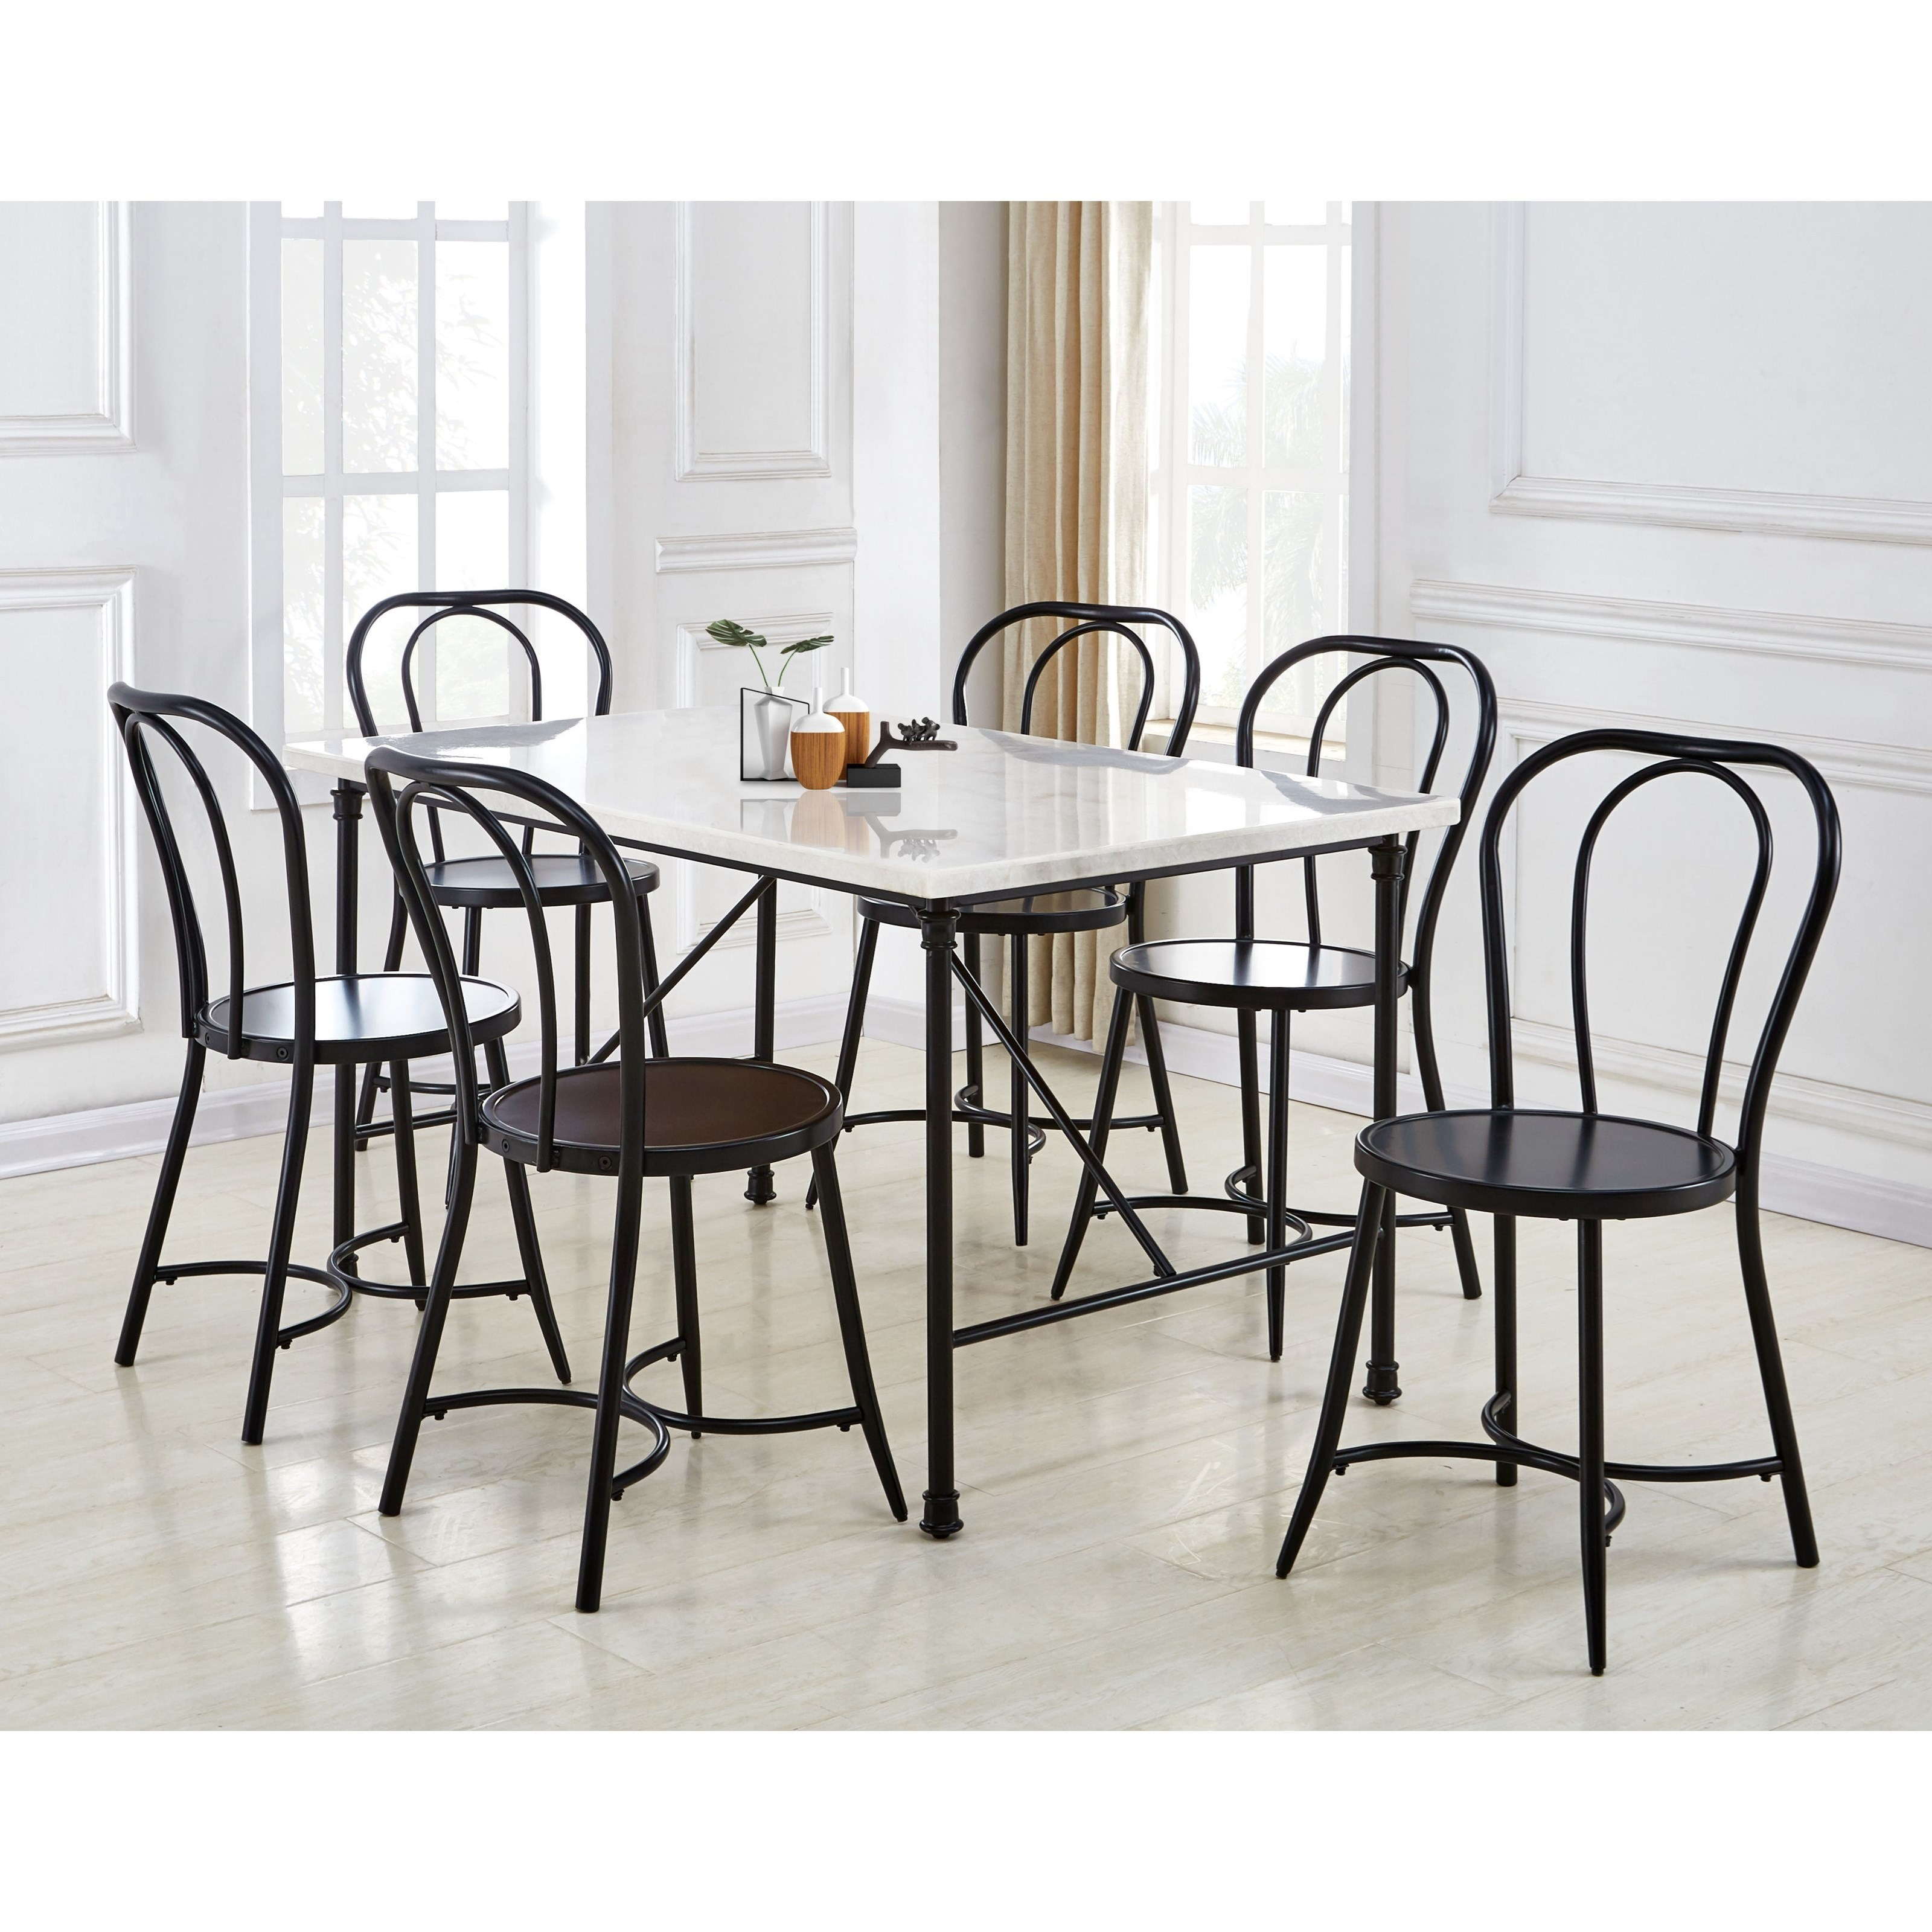 Contemporary 7-Piece Dining Table and Chair Set with White Marble Top